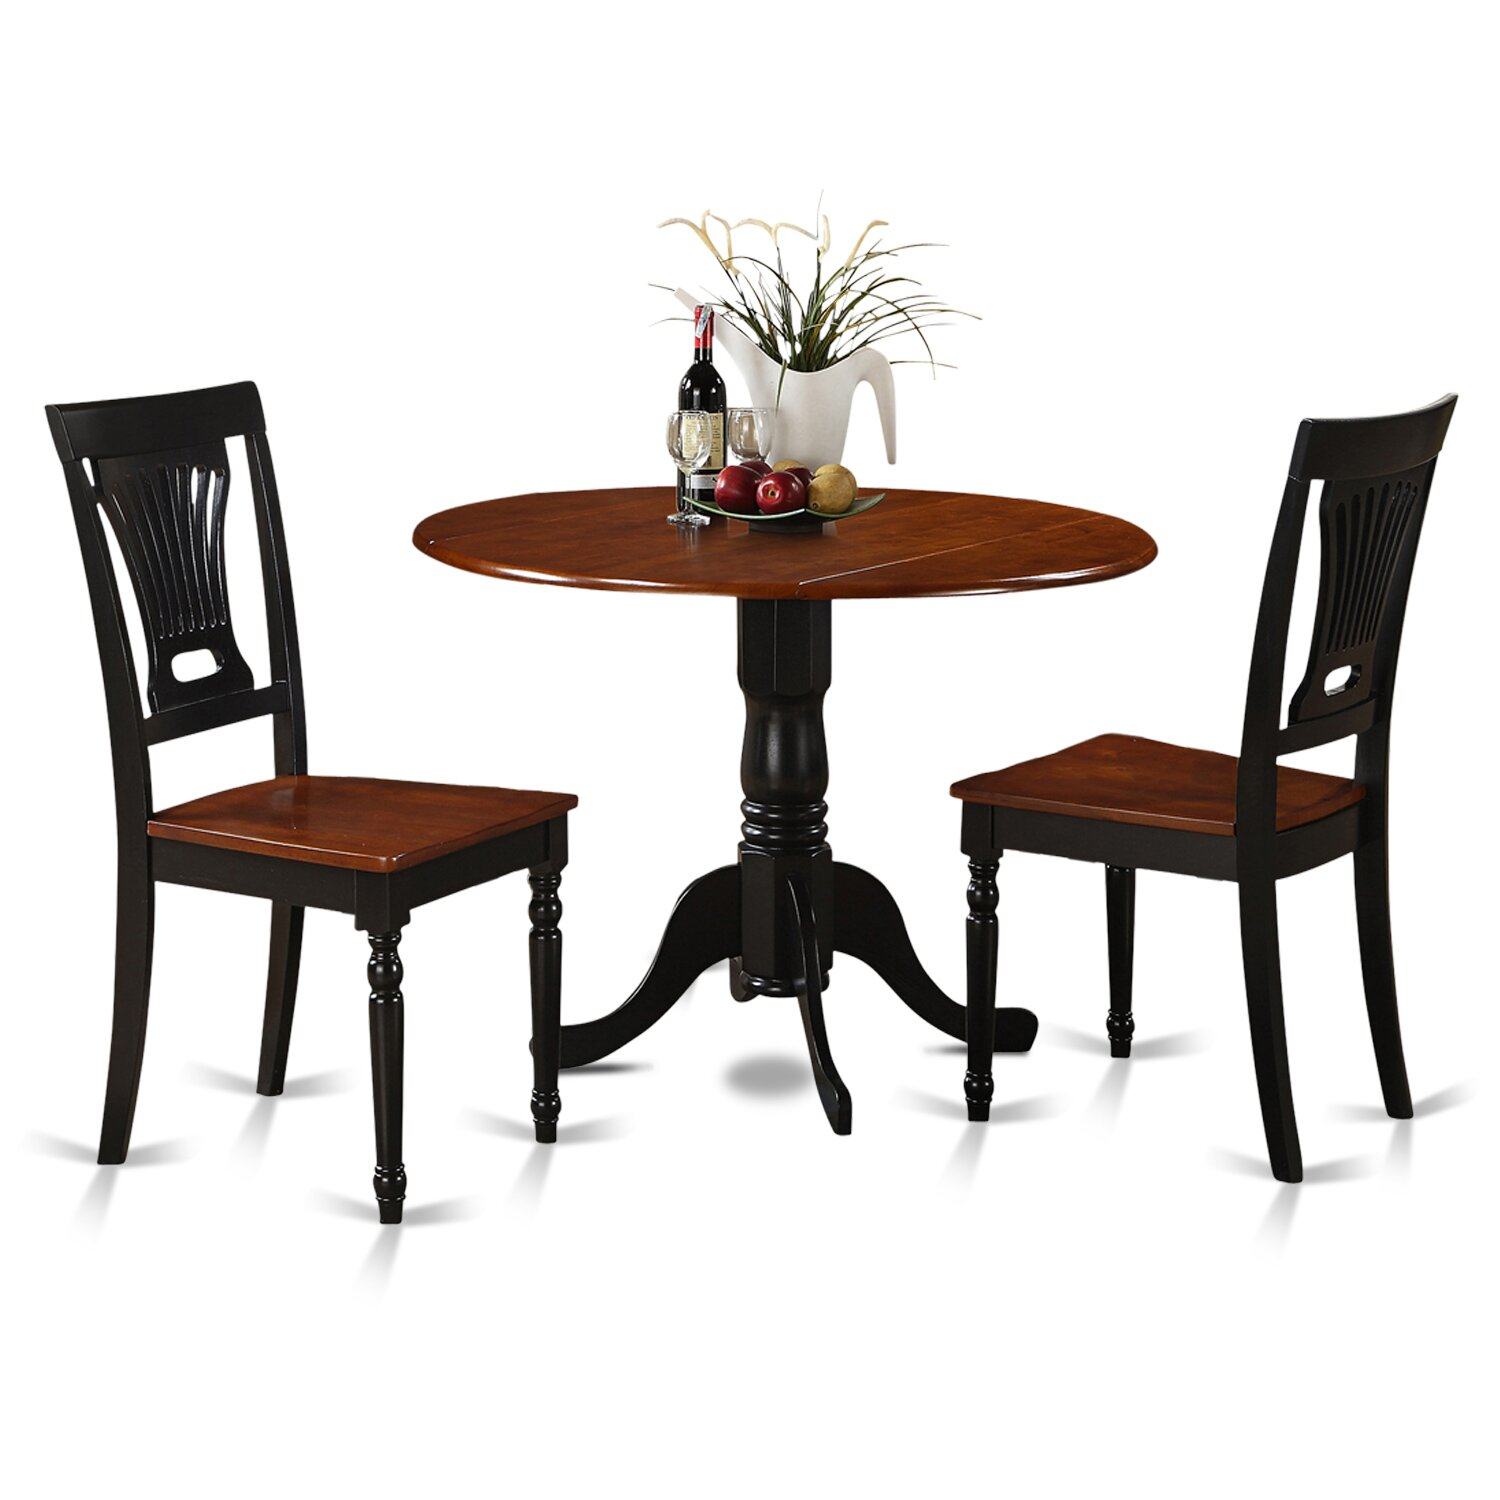 Wooden importers dublin 3 piece dining set reviews wayfair for Dinette furniture